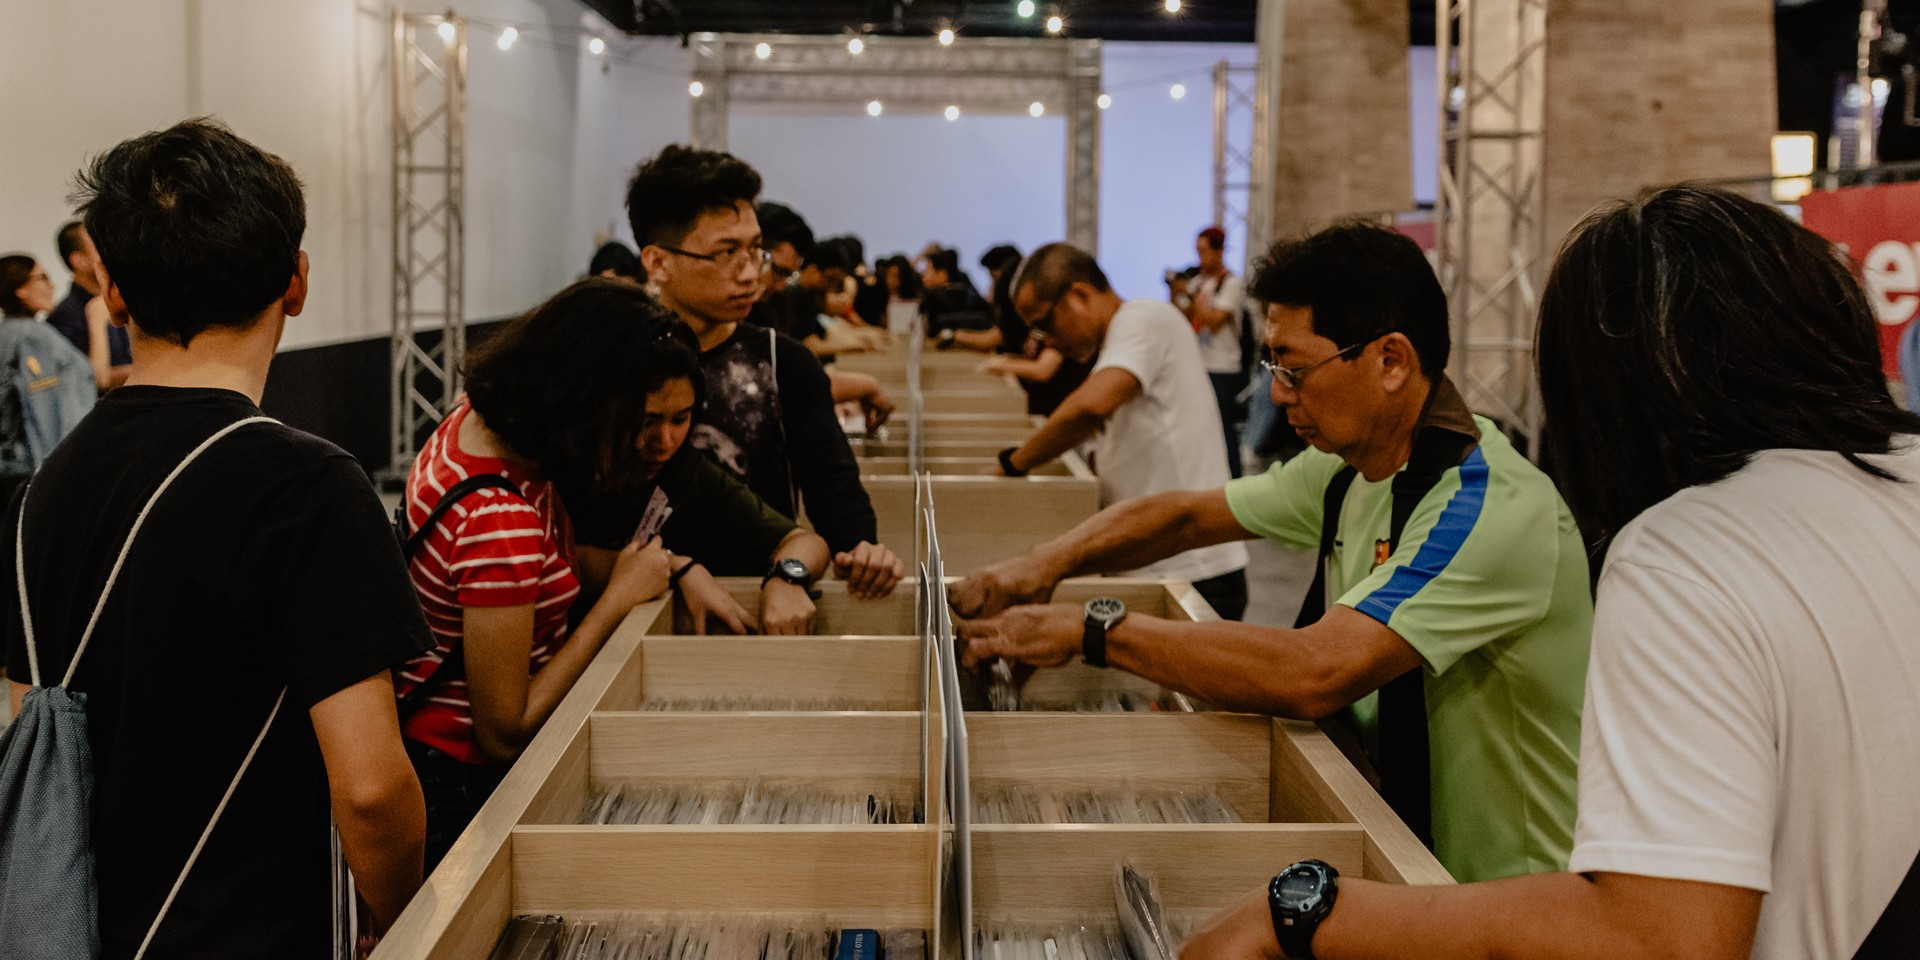 Record Store Day 2019 in the Philippines: Where and how to celebrate